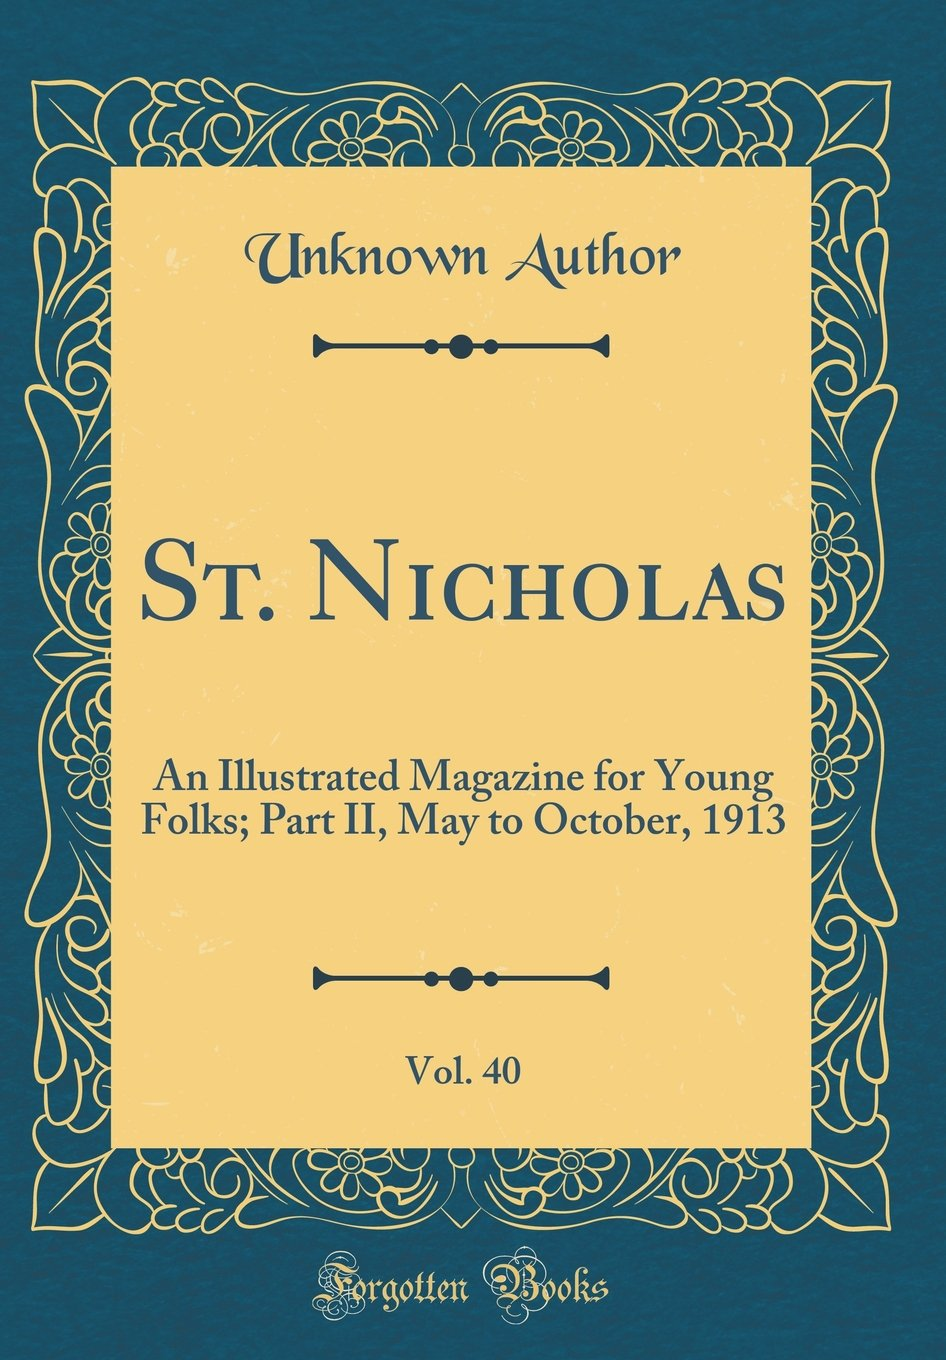 Download St. Nicholas, Vol. 40: An Illustrated Magazine for Young Folks; Part II, May to October, 1913 (Classic Reprint) ebook